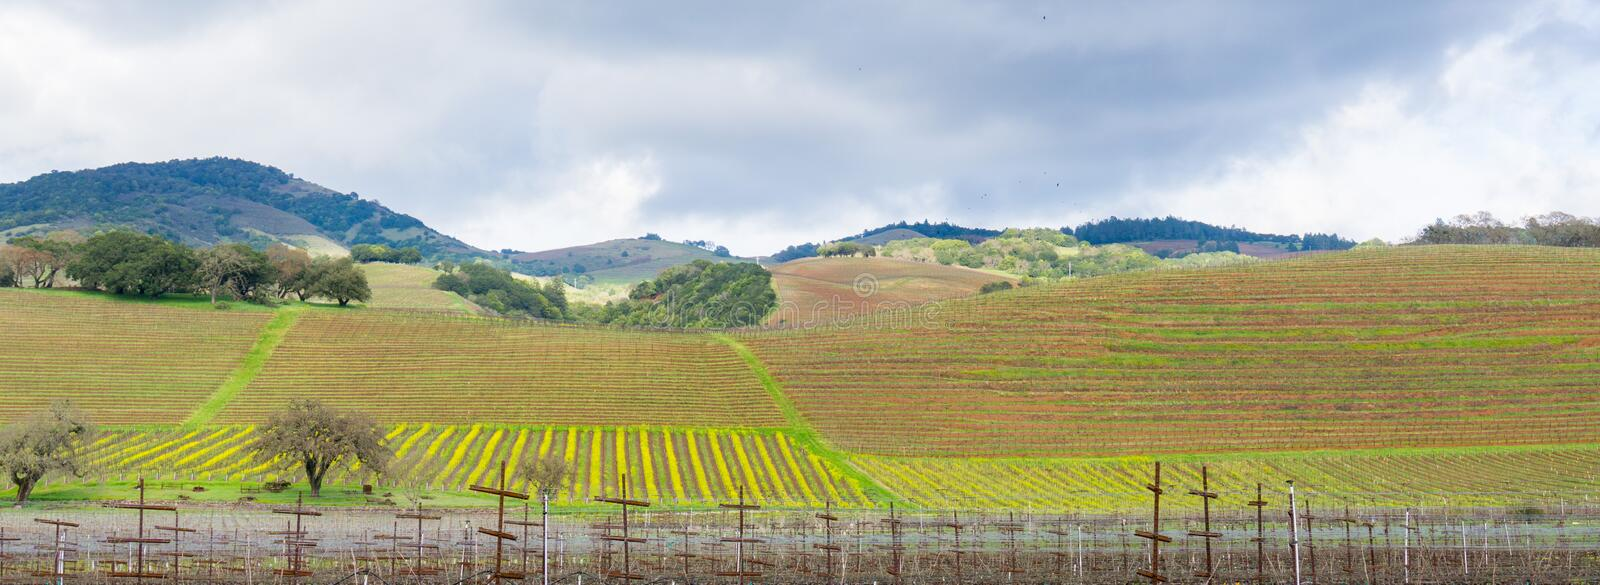 Hills covered in vineyards in Sonoma Valley at the beginning of spring, California royalty free stock photos